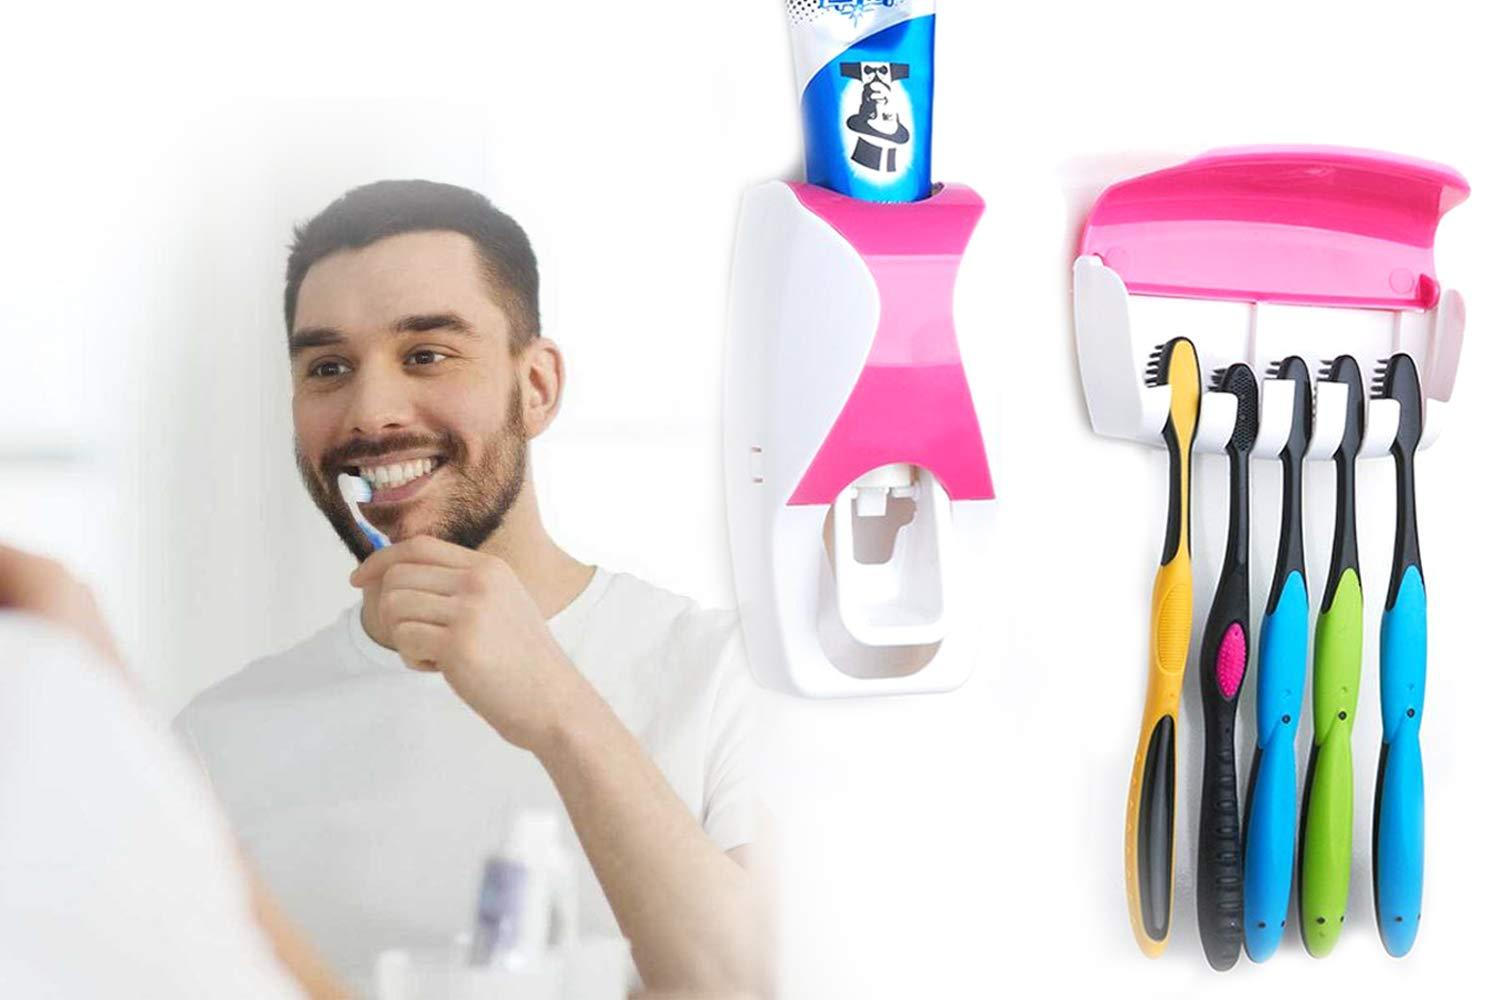 toothpaste-dispenser-tooth-brush-with-toothbrush